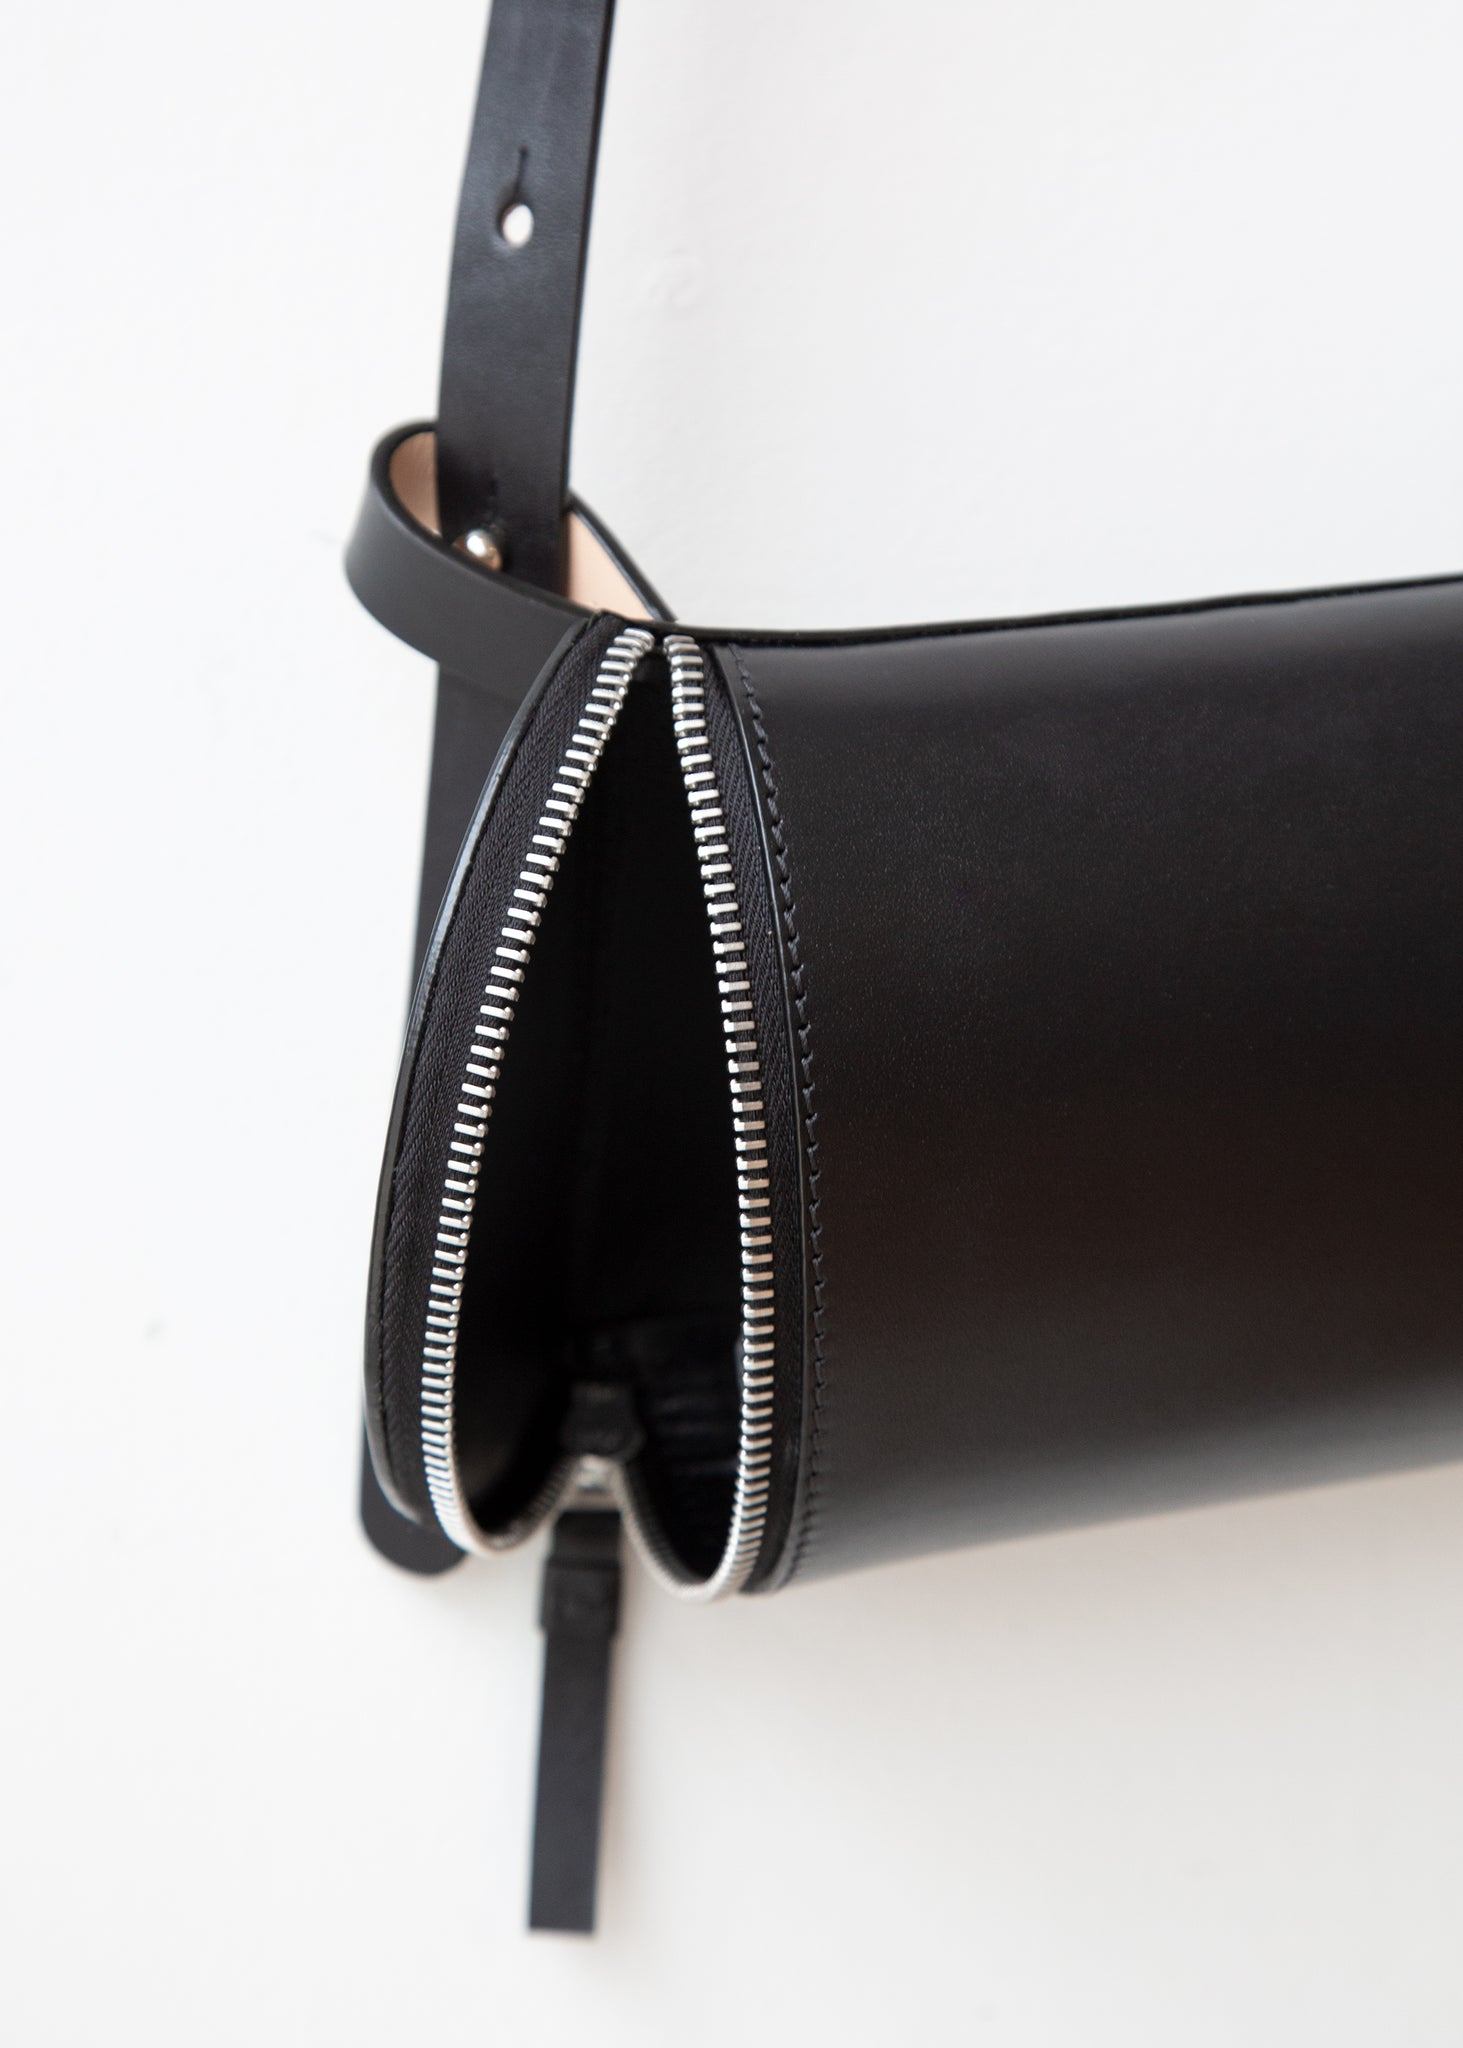 Beltpack in Smooth Black Leather - SOLD OUT